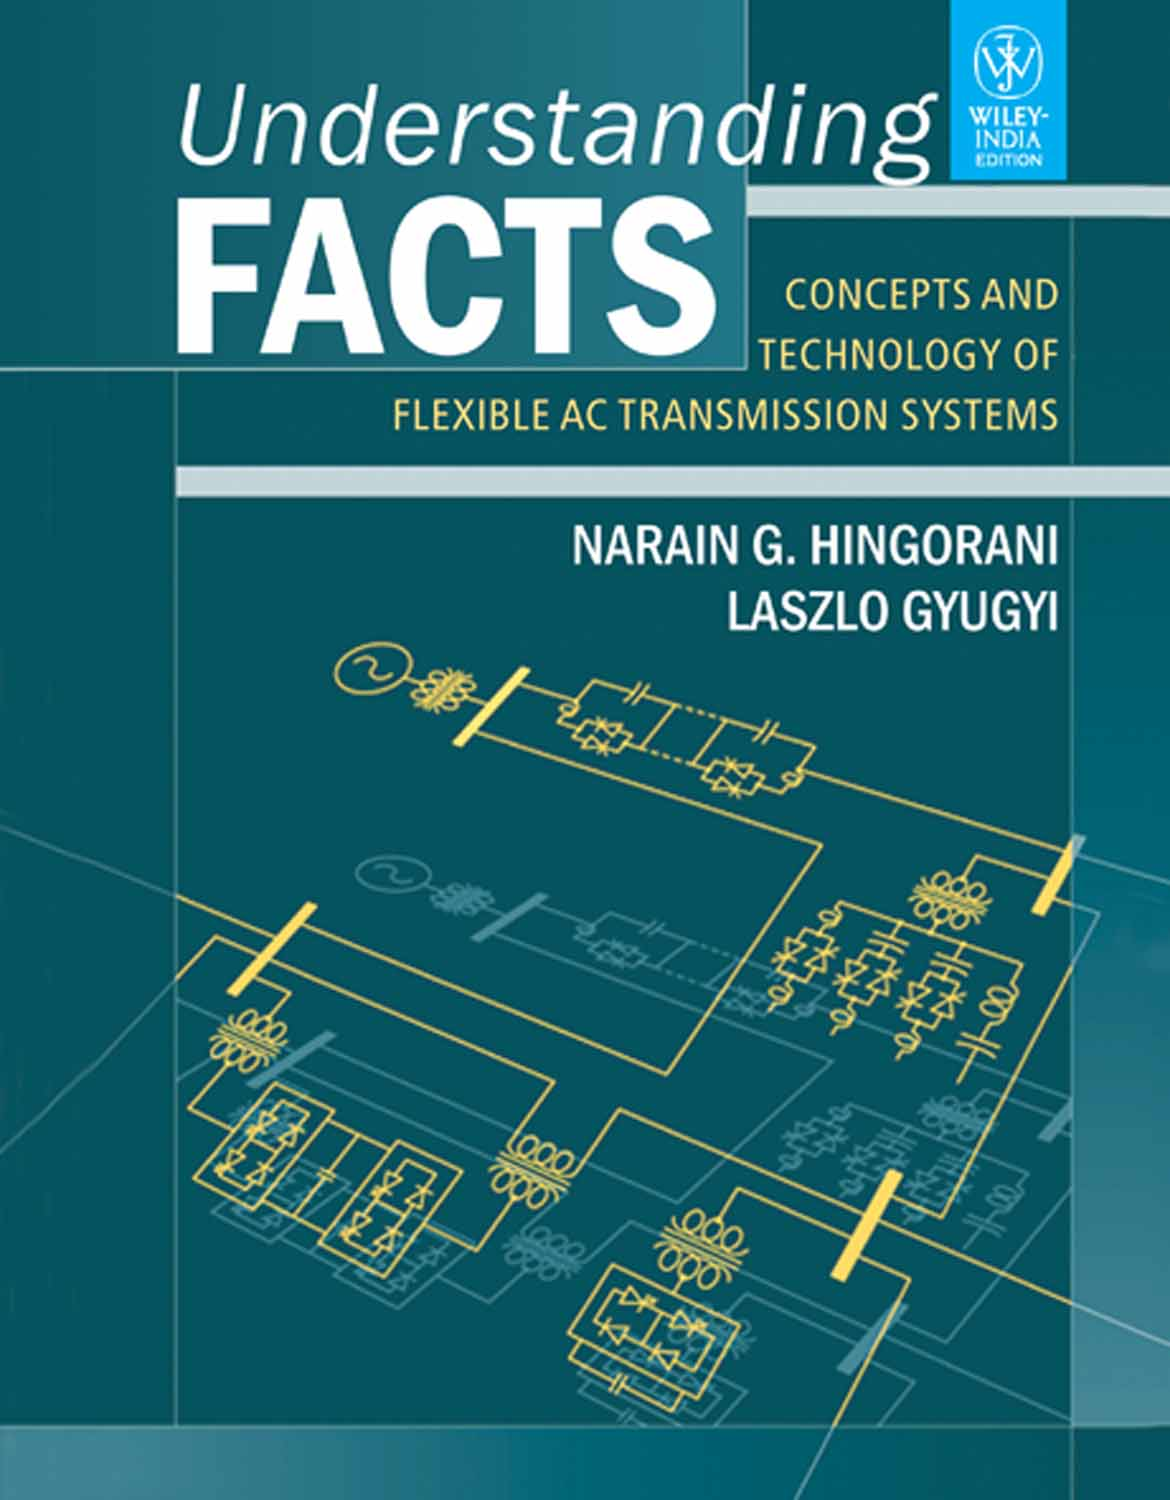 Understanding Facts Concepts And Technology Of Flexible Ac Electronics Circuit Book Transmission Systems Laszlo Gyugyi Narain G Hingorani 8126530405 9788126530403